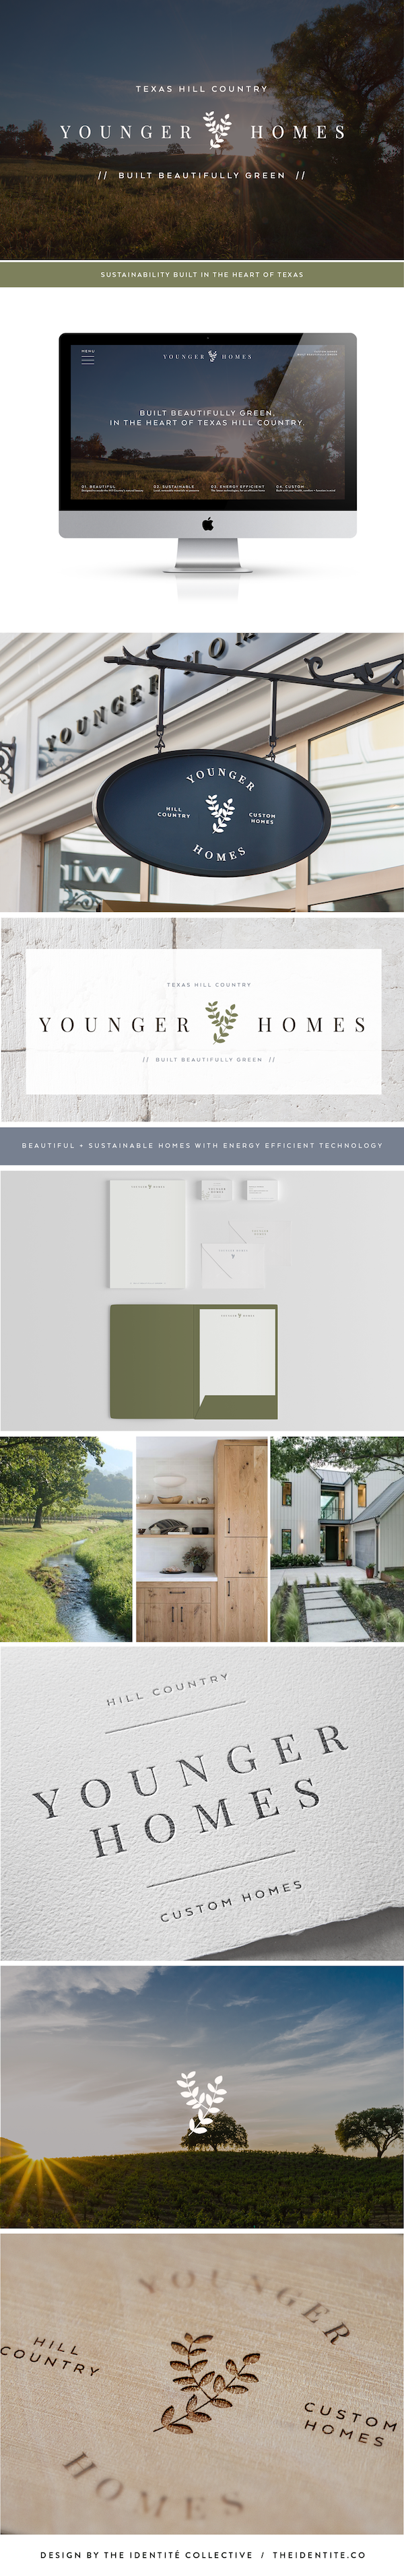 Green, eco-friendly home builder branding and web design by The ...